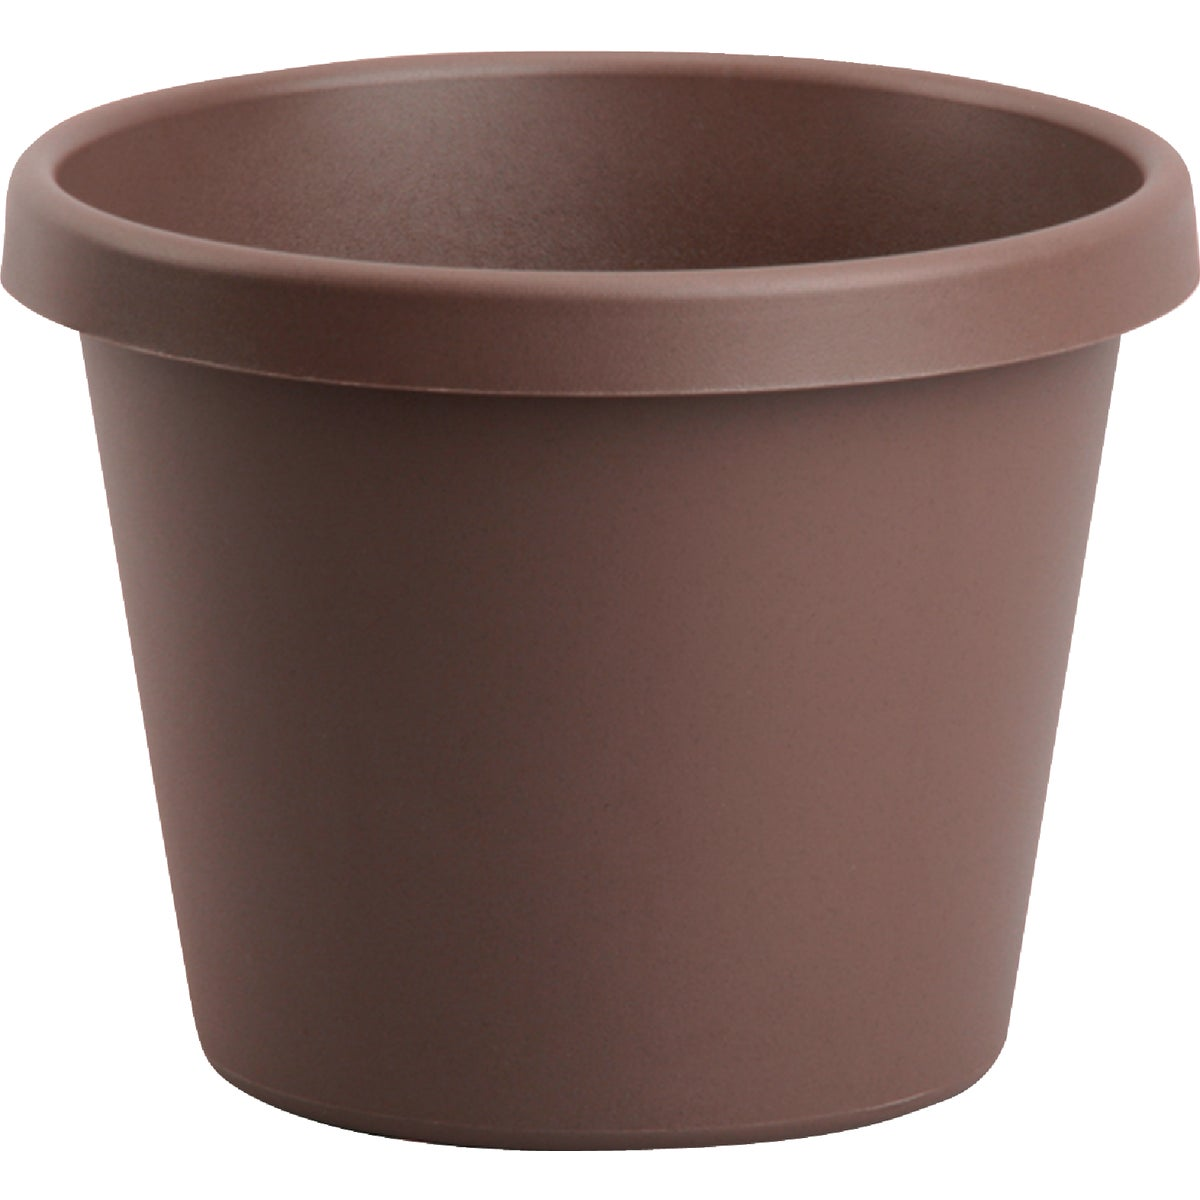 "8"" CHCOLATE POLY POT - 450085-1001 by Fiskars Brands Inc"